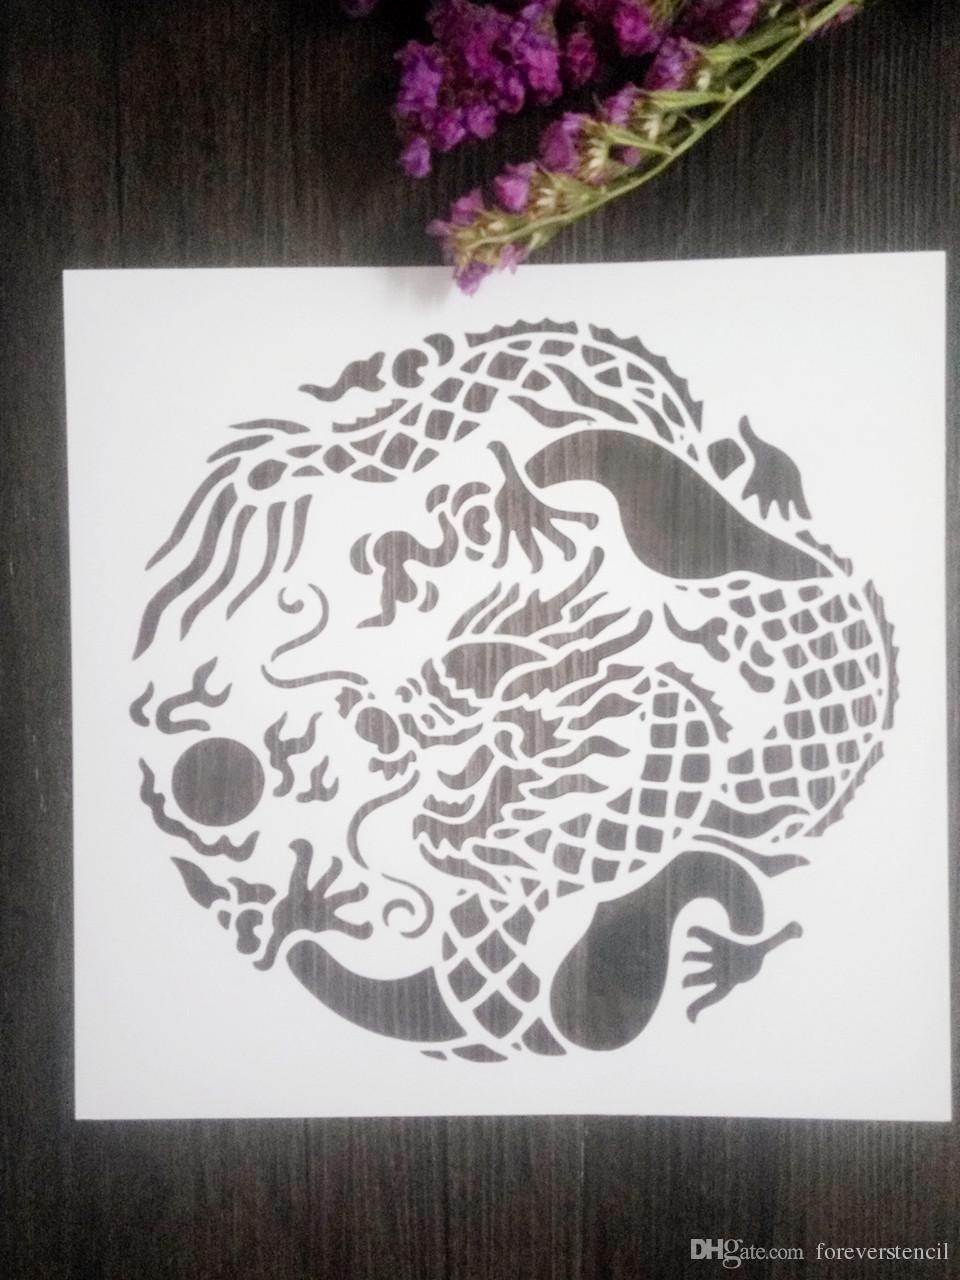 Cheap white drawing stencils for wall masking template for cheap white drawing stencils for wall masking template for scrapbookingcardmakingpaintingdiy cards chinese dragon 088 stencils for scrapbooking diy gumiabroncs Images